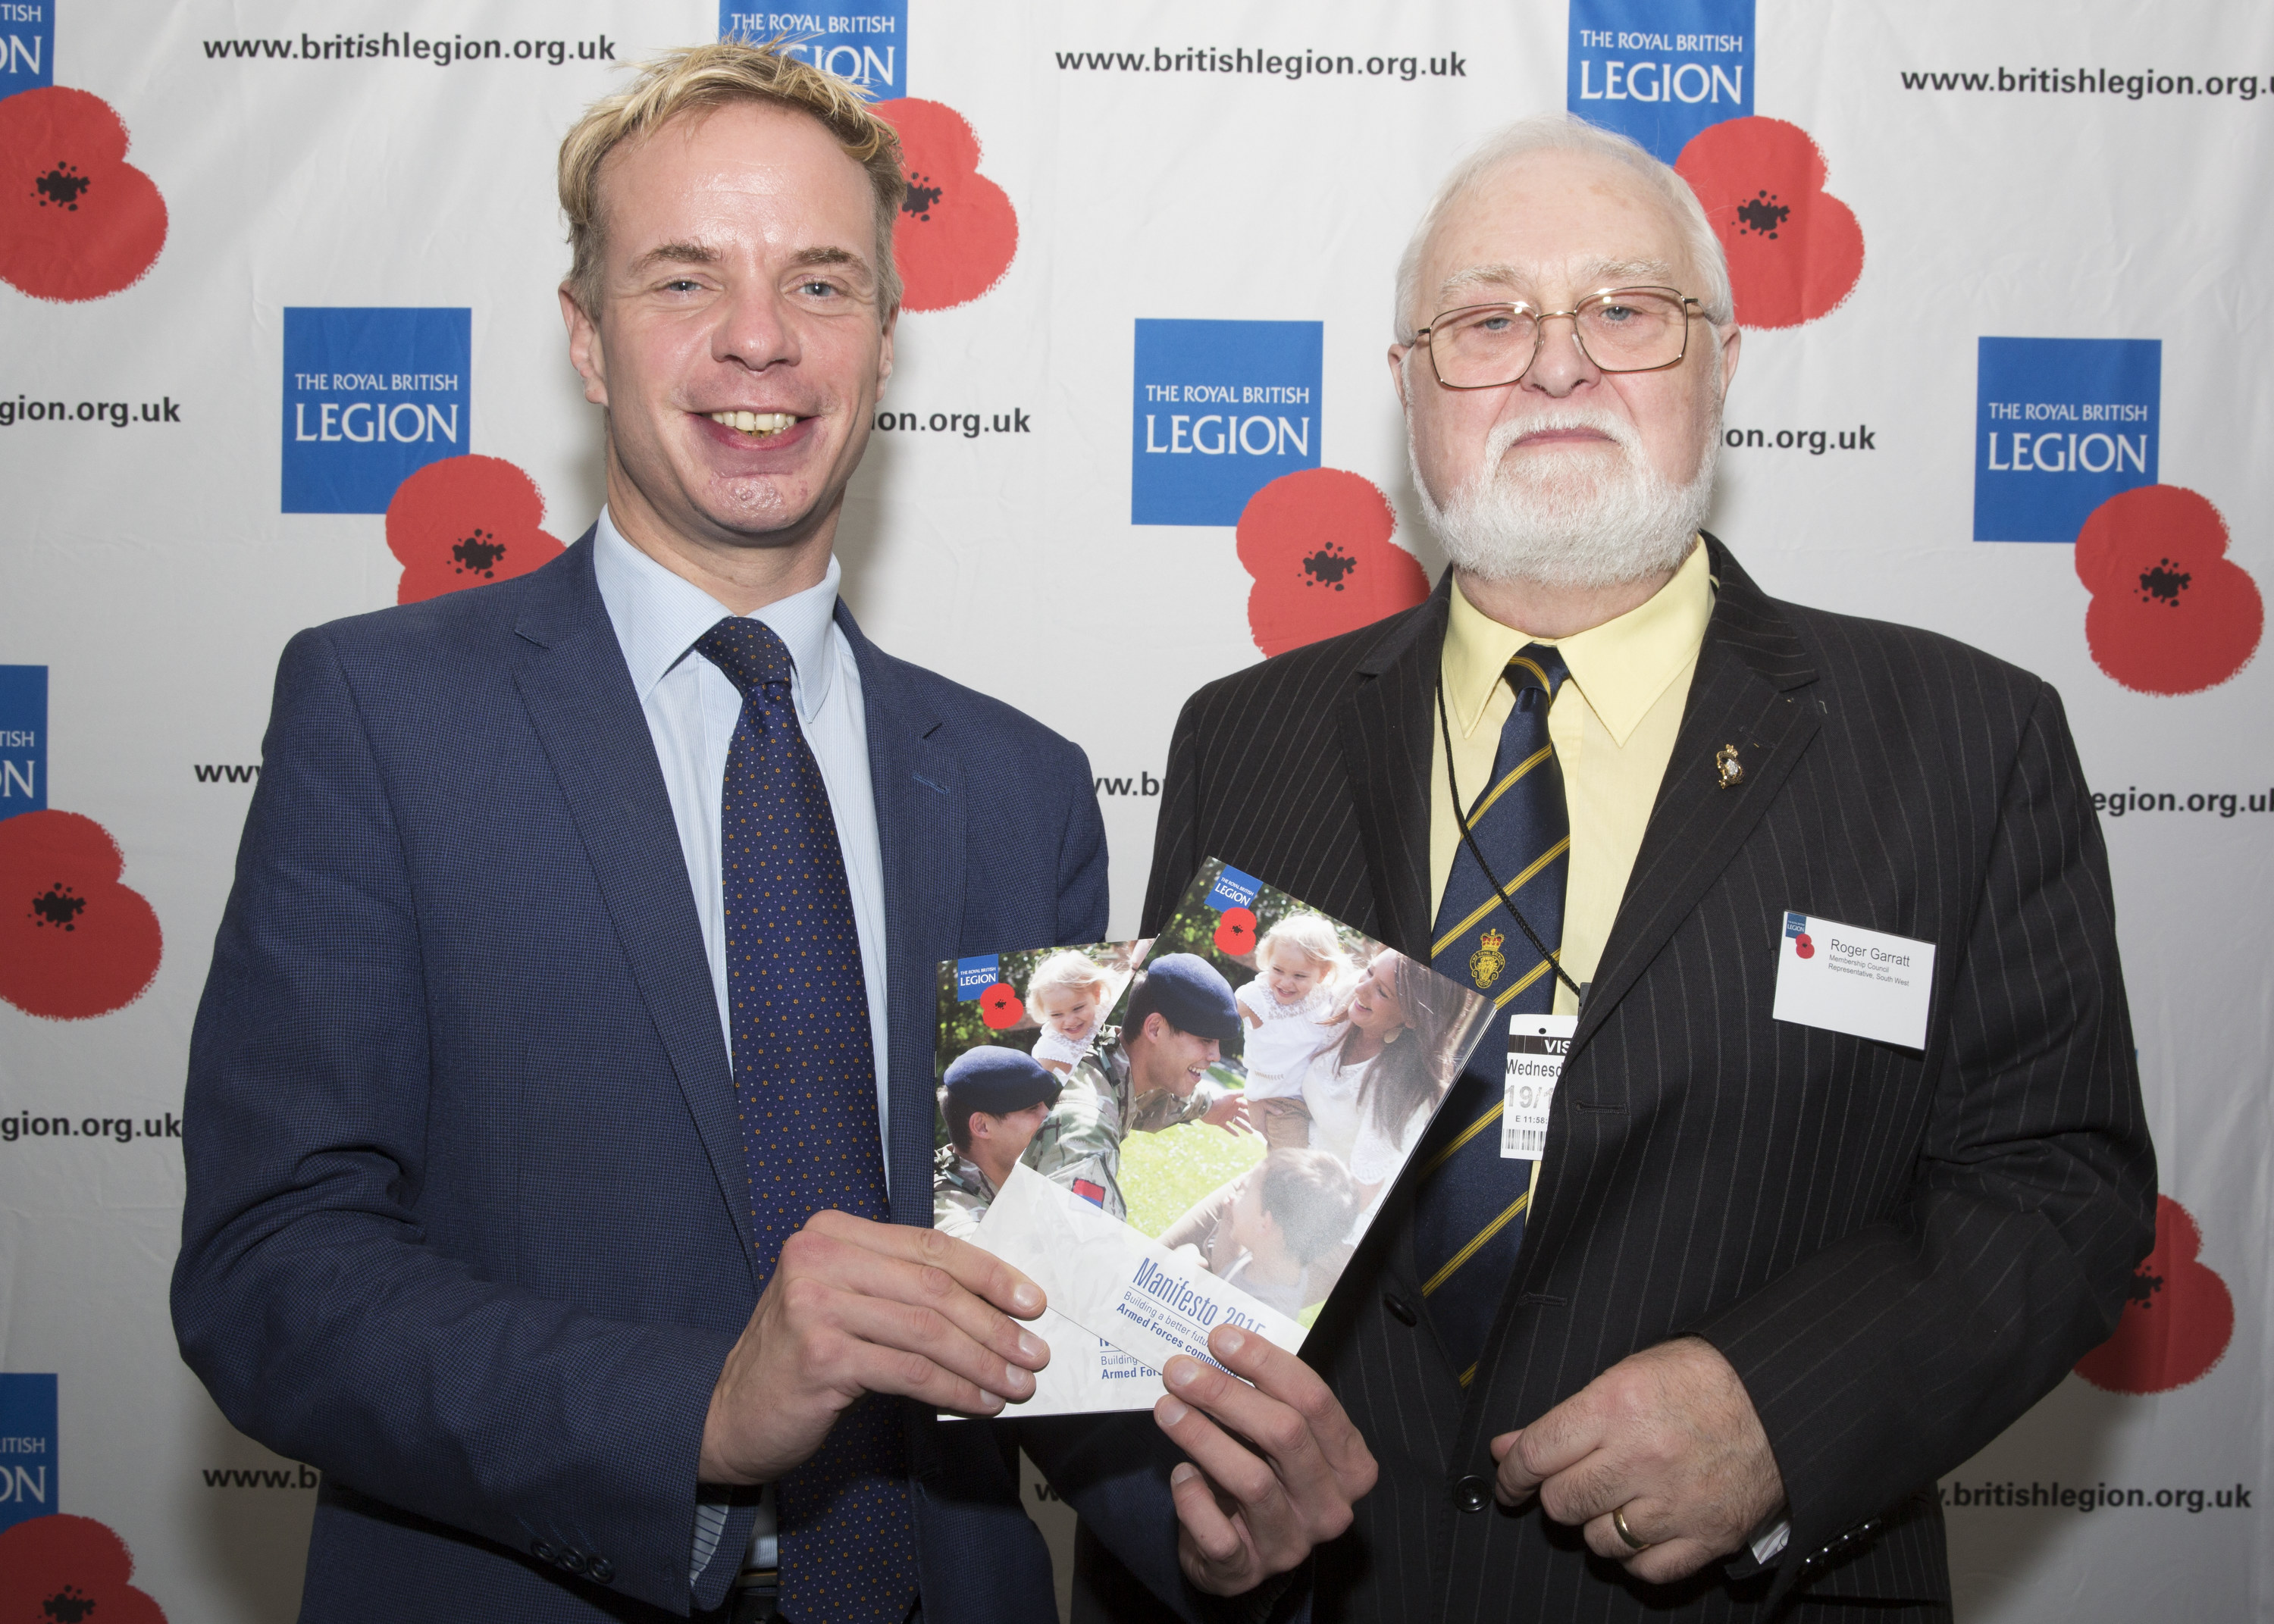 key_RBL_2014_Parliamentary_Reception_9.jpg